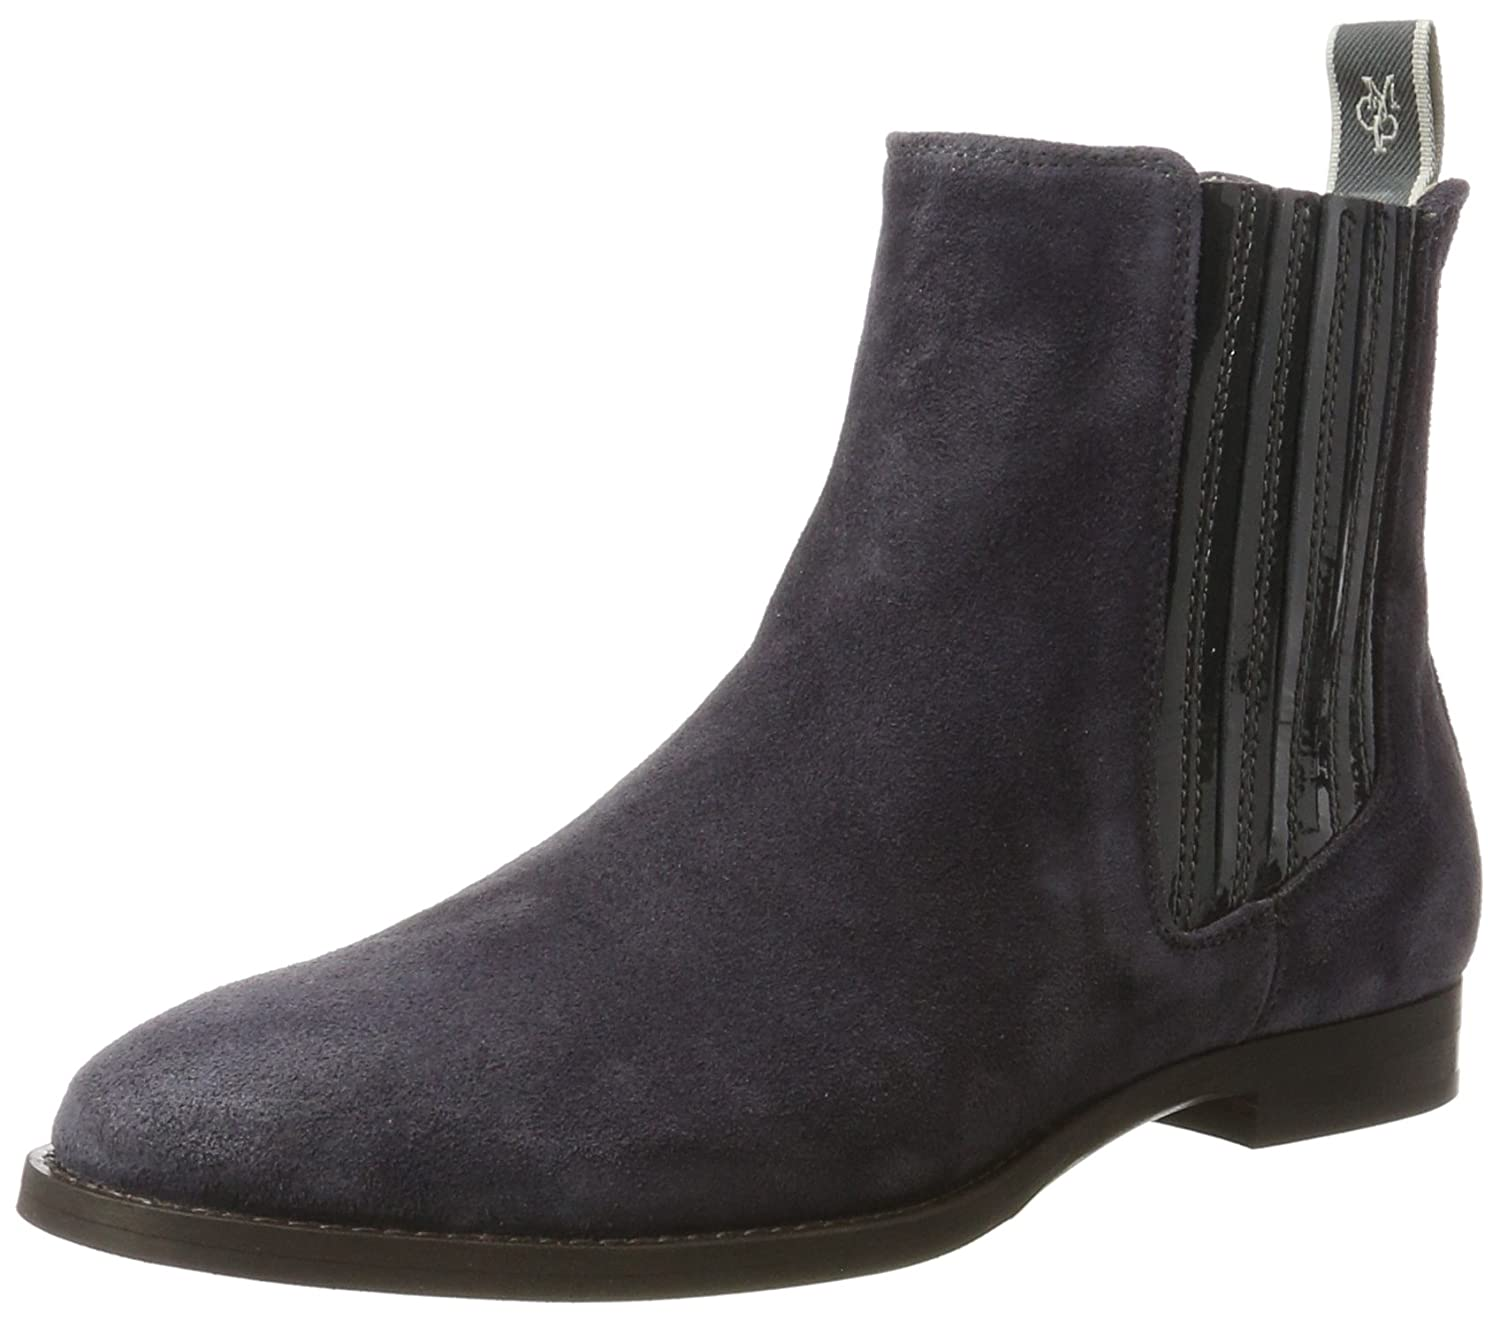 Womens Mid Heel Chelsea 70814215101123 Slouch Boots Marc O'Polo 8A2qW